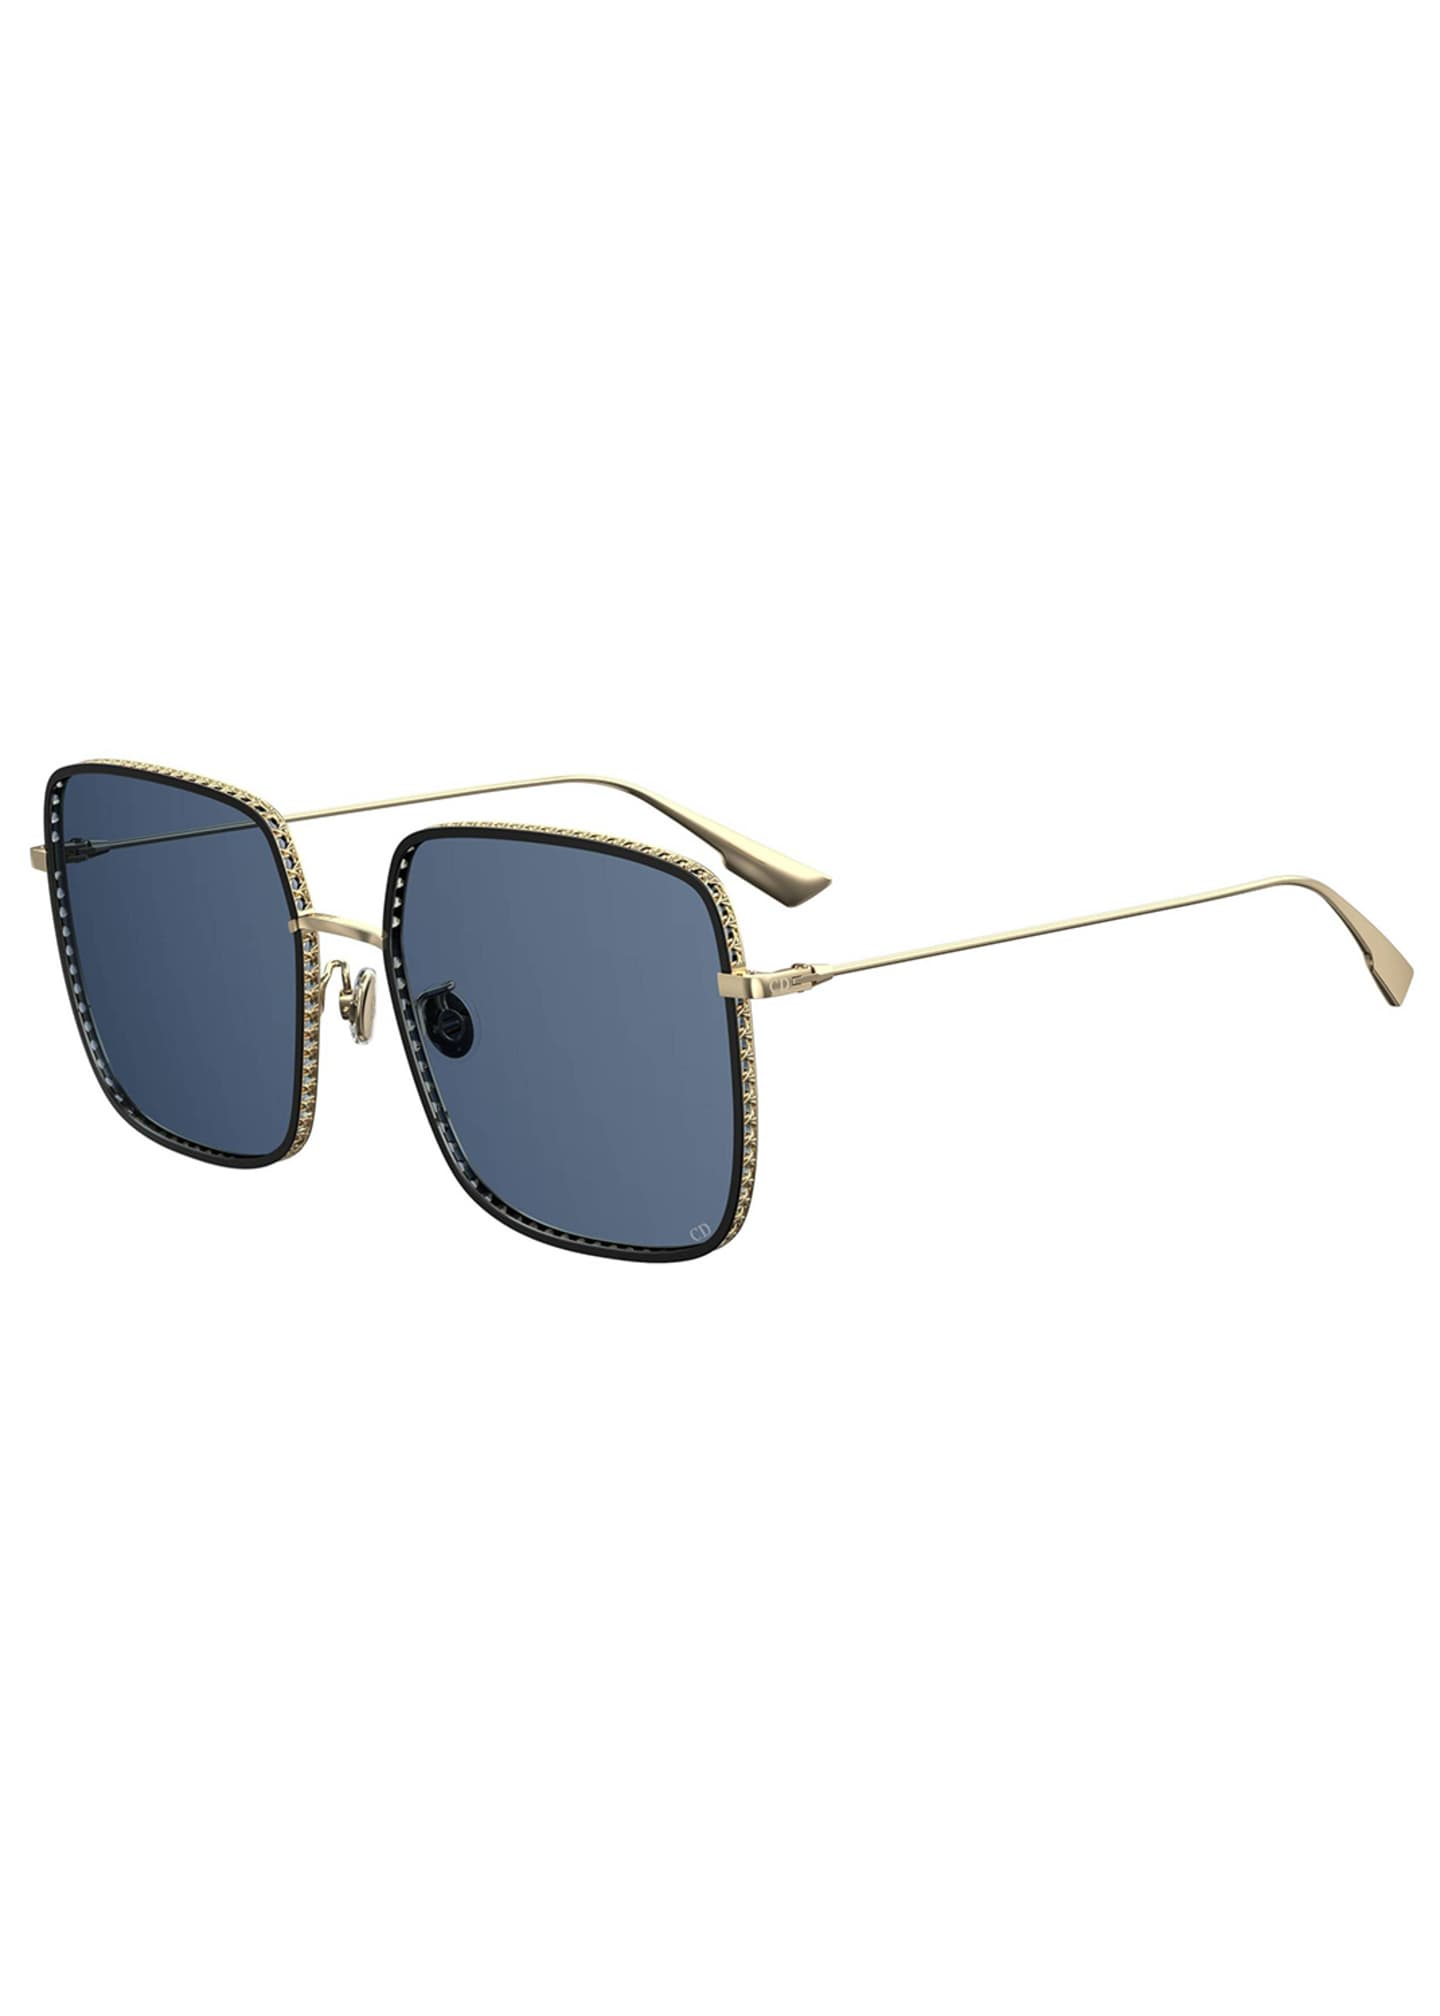 Image 1 of 1: DiorByDior3 Square Sunglasses